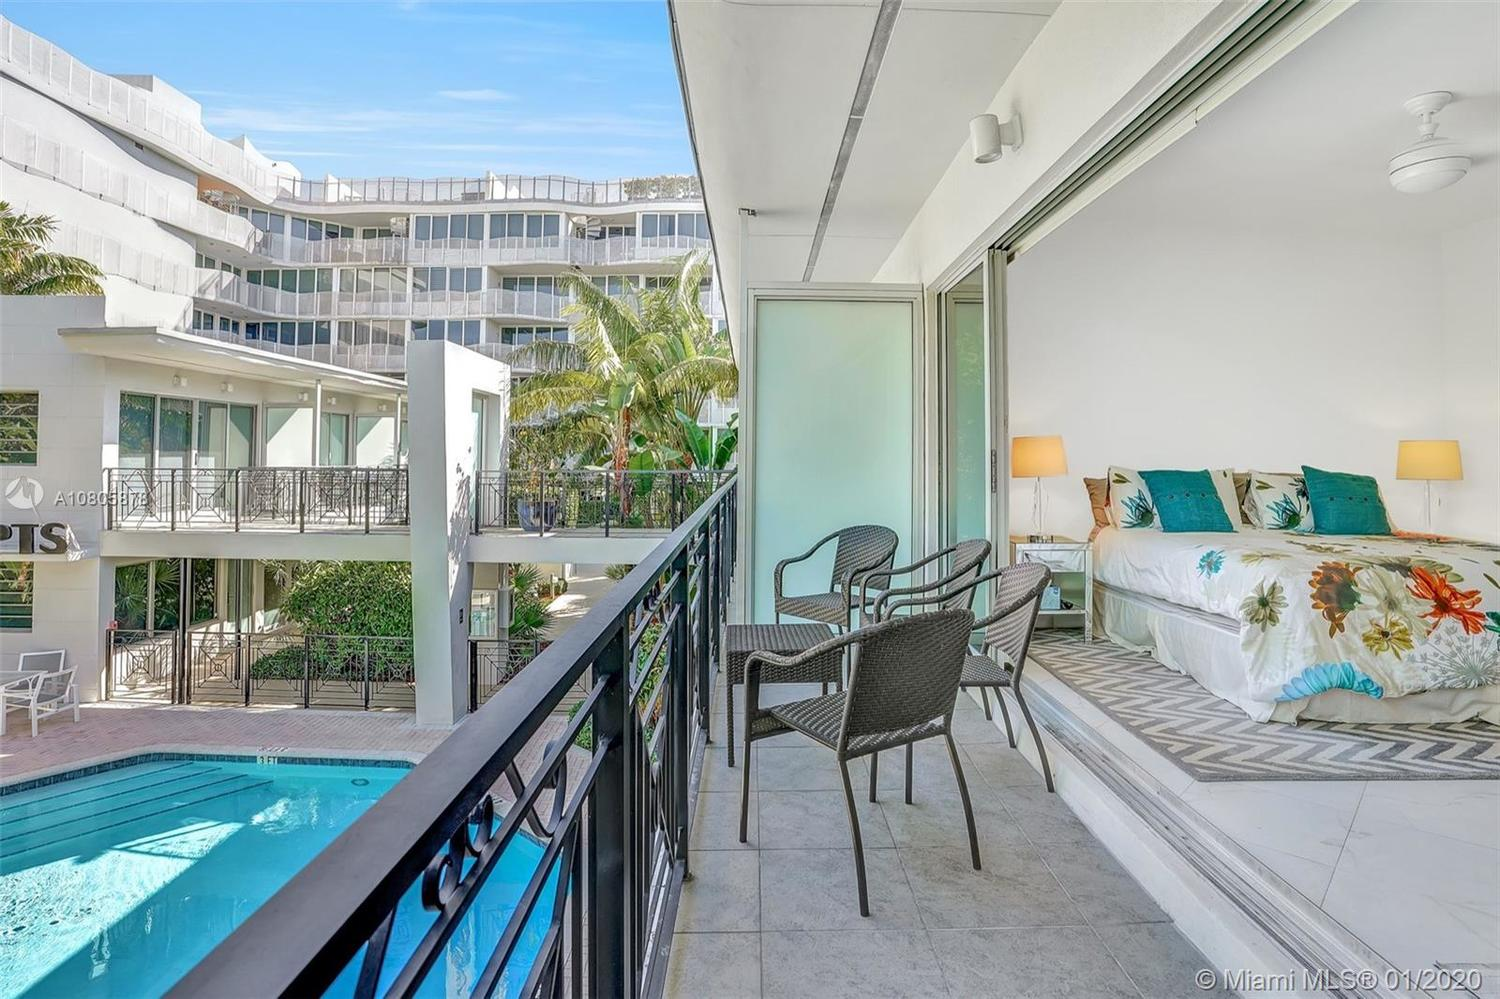 2135 Washington Court, Unit TH5 Miami Beach, FL 33139